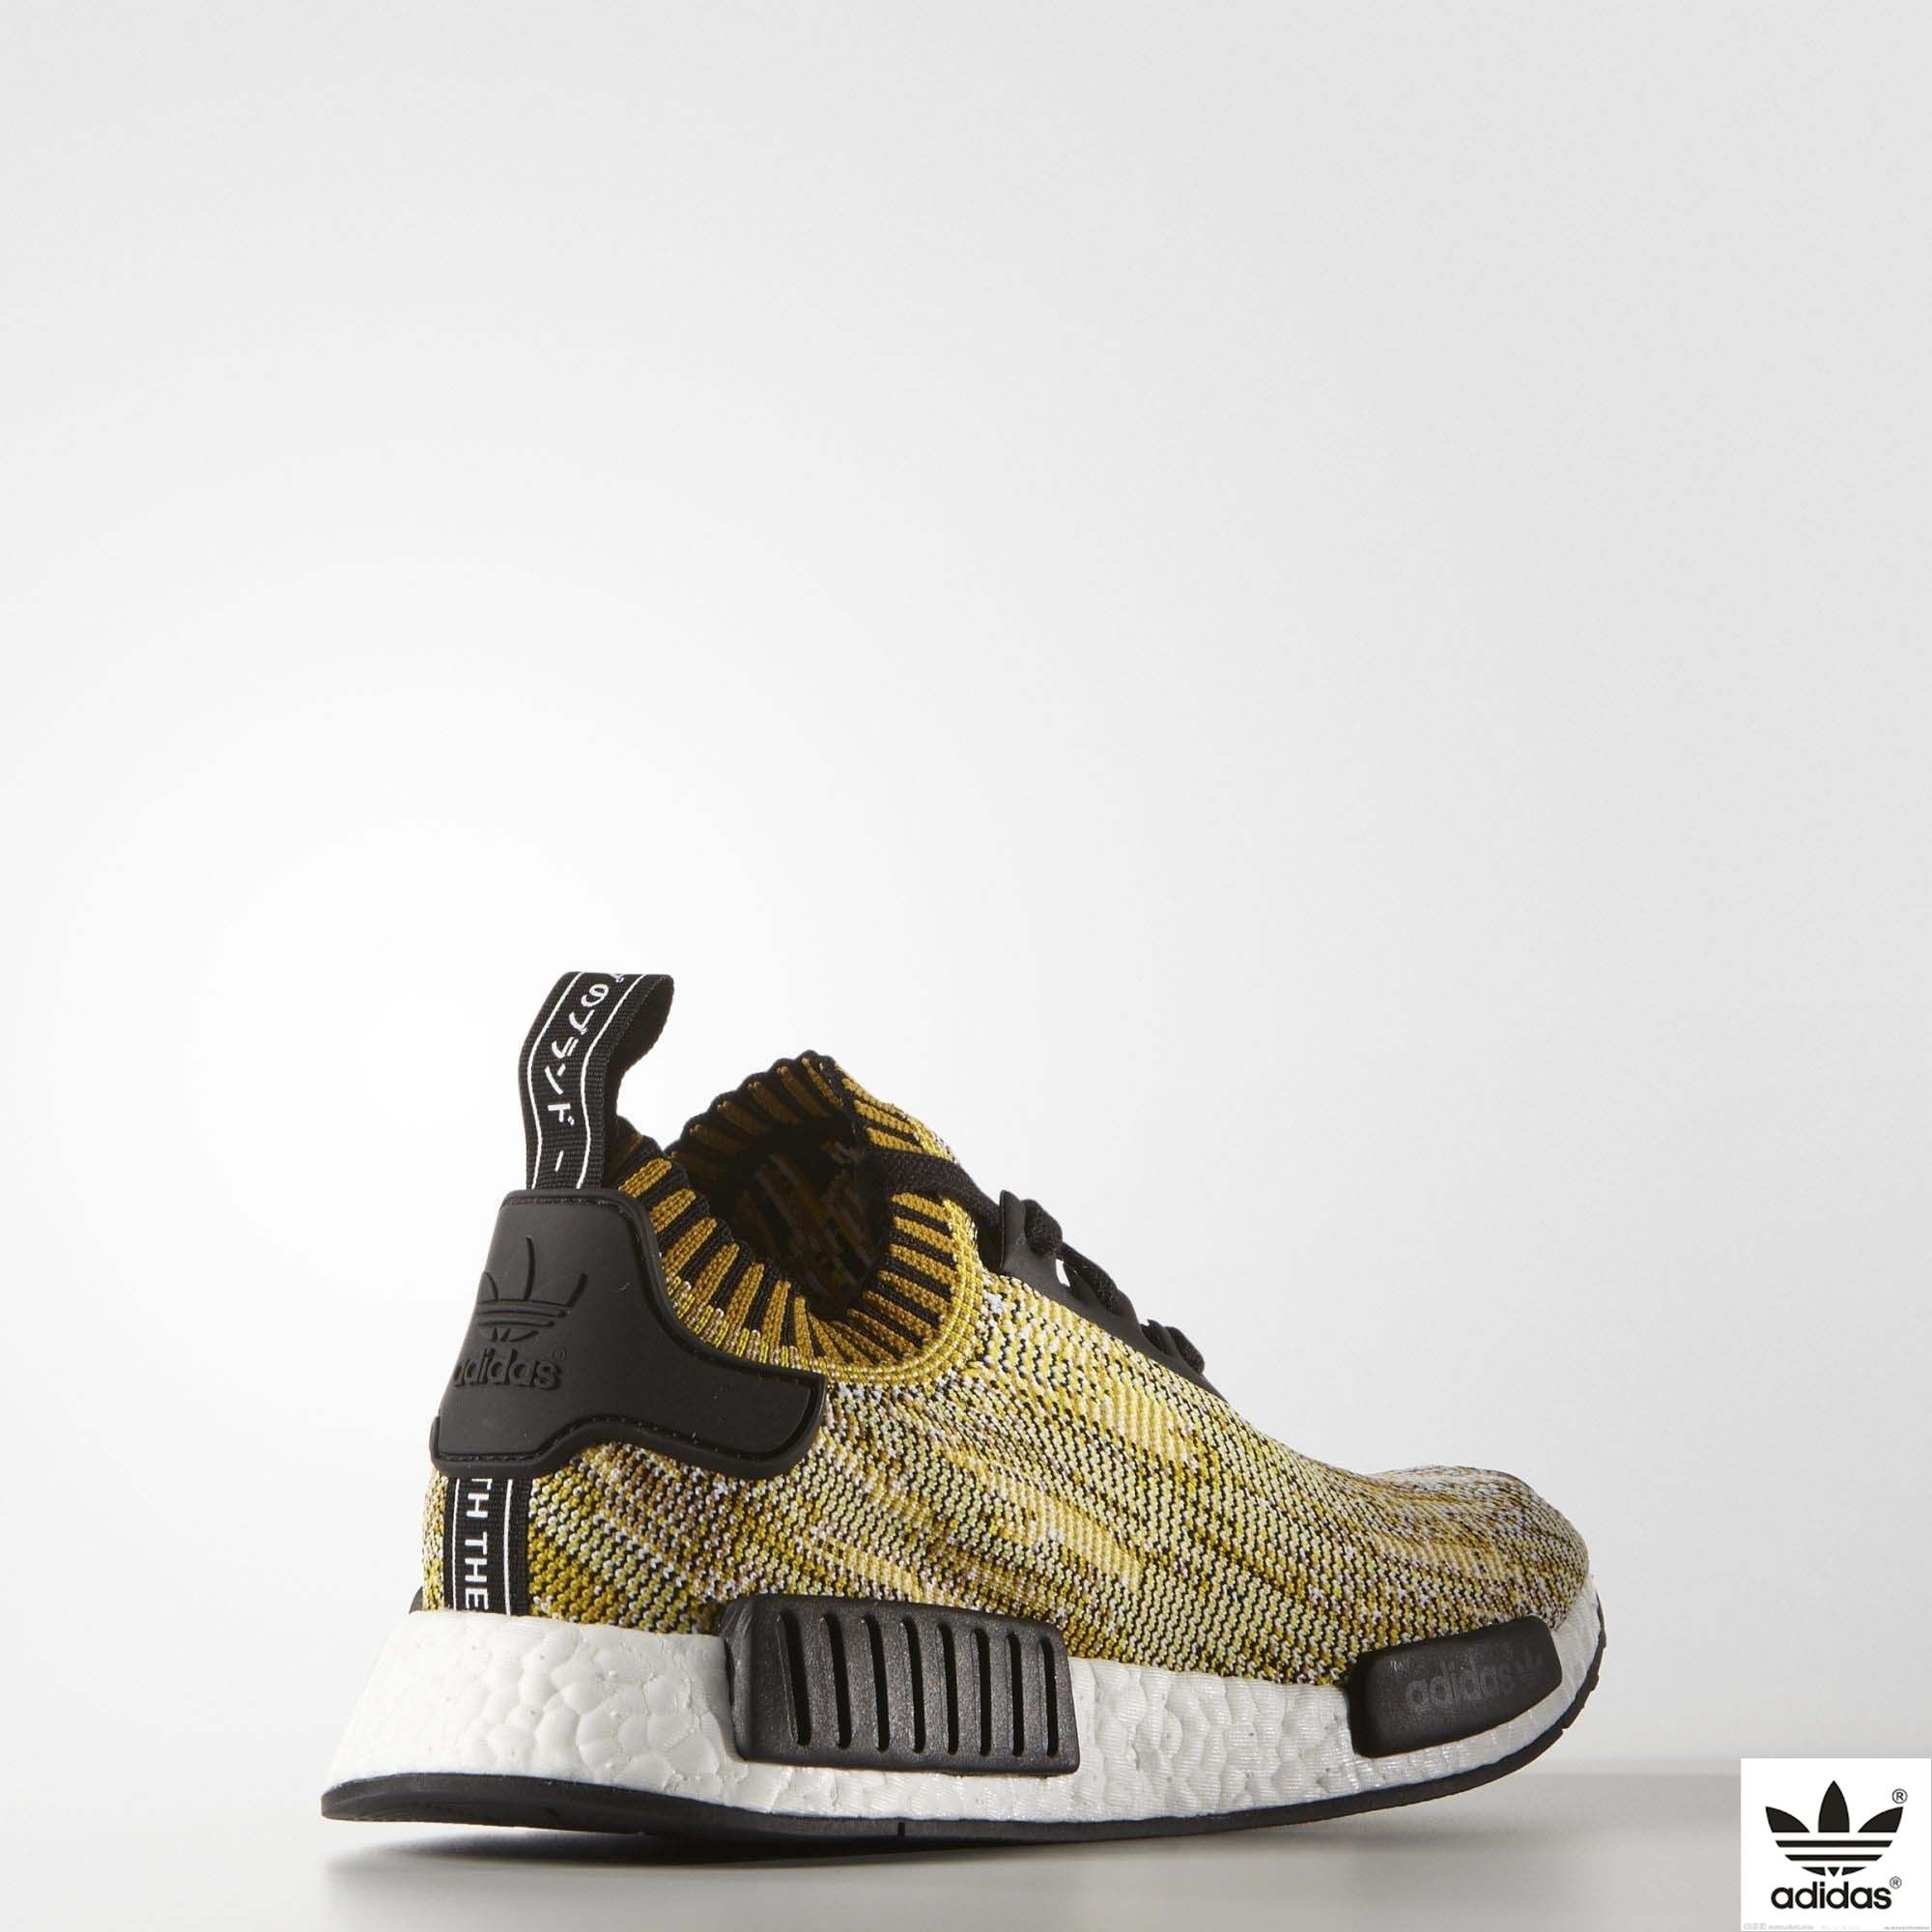 389b8e6c912c5 Adidas NMD_R1 Primeknit Yellow Camo - Mens Core BlackCore BlackSt Nomad  Yellow3 hunting for limited offer,no tax and free shipping.